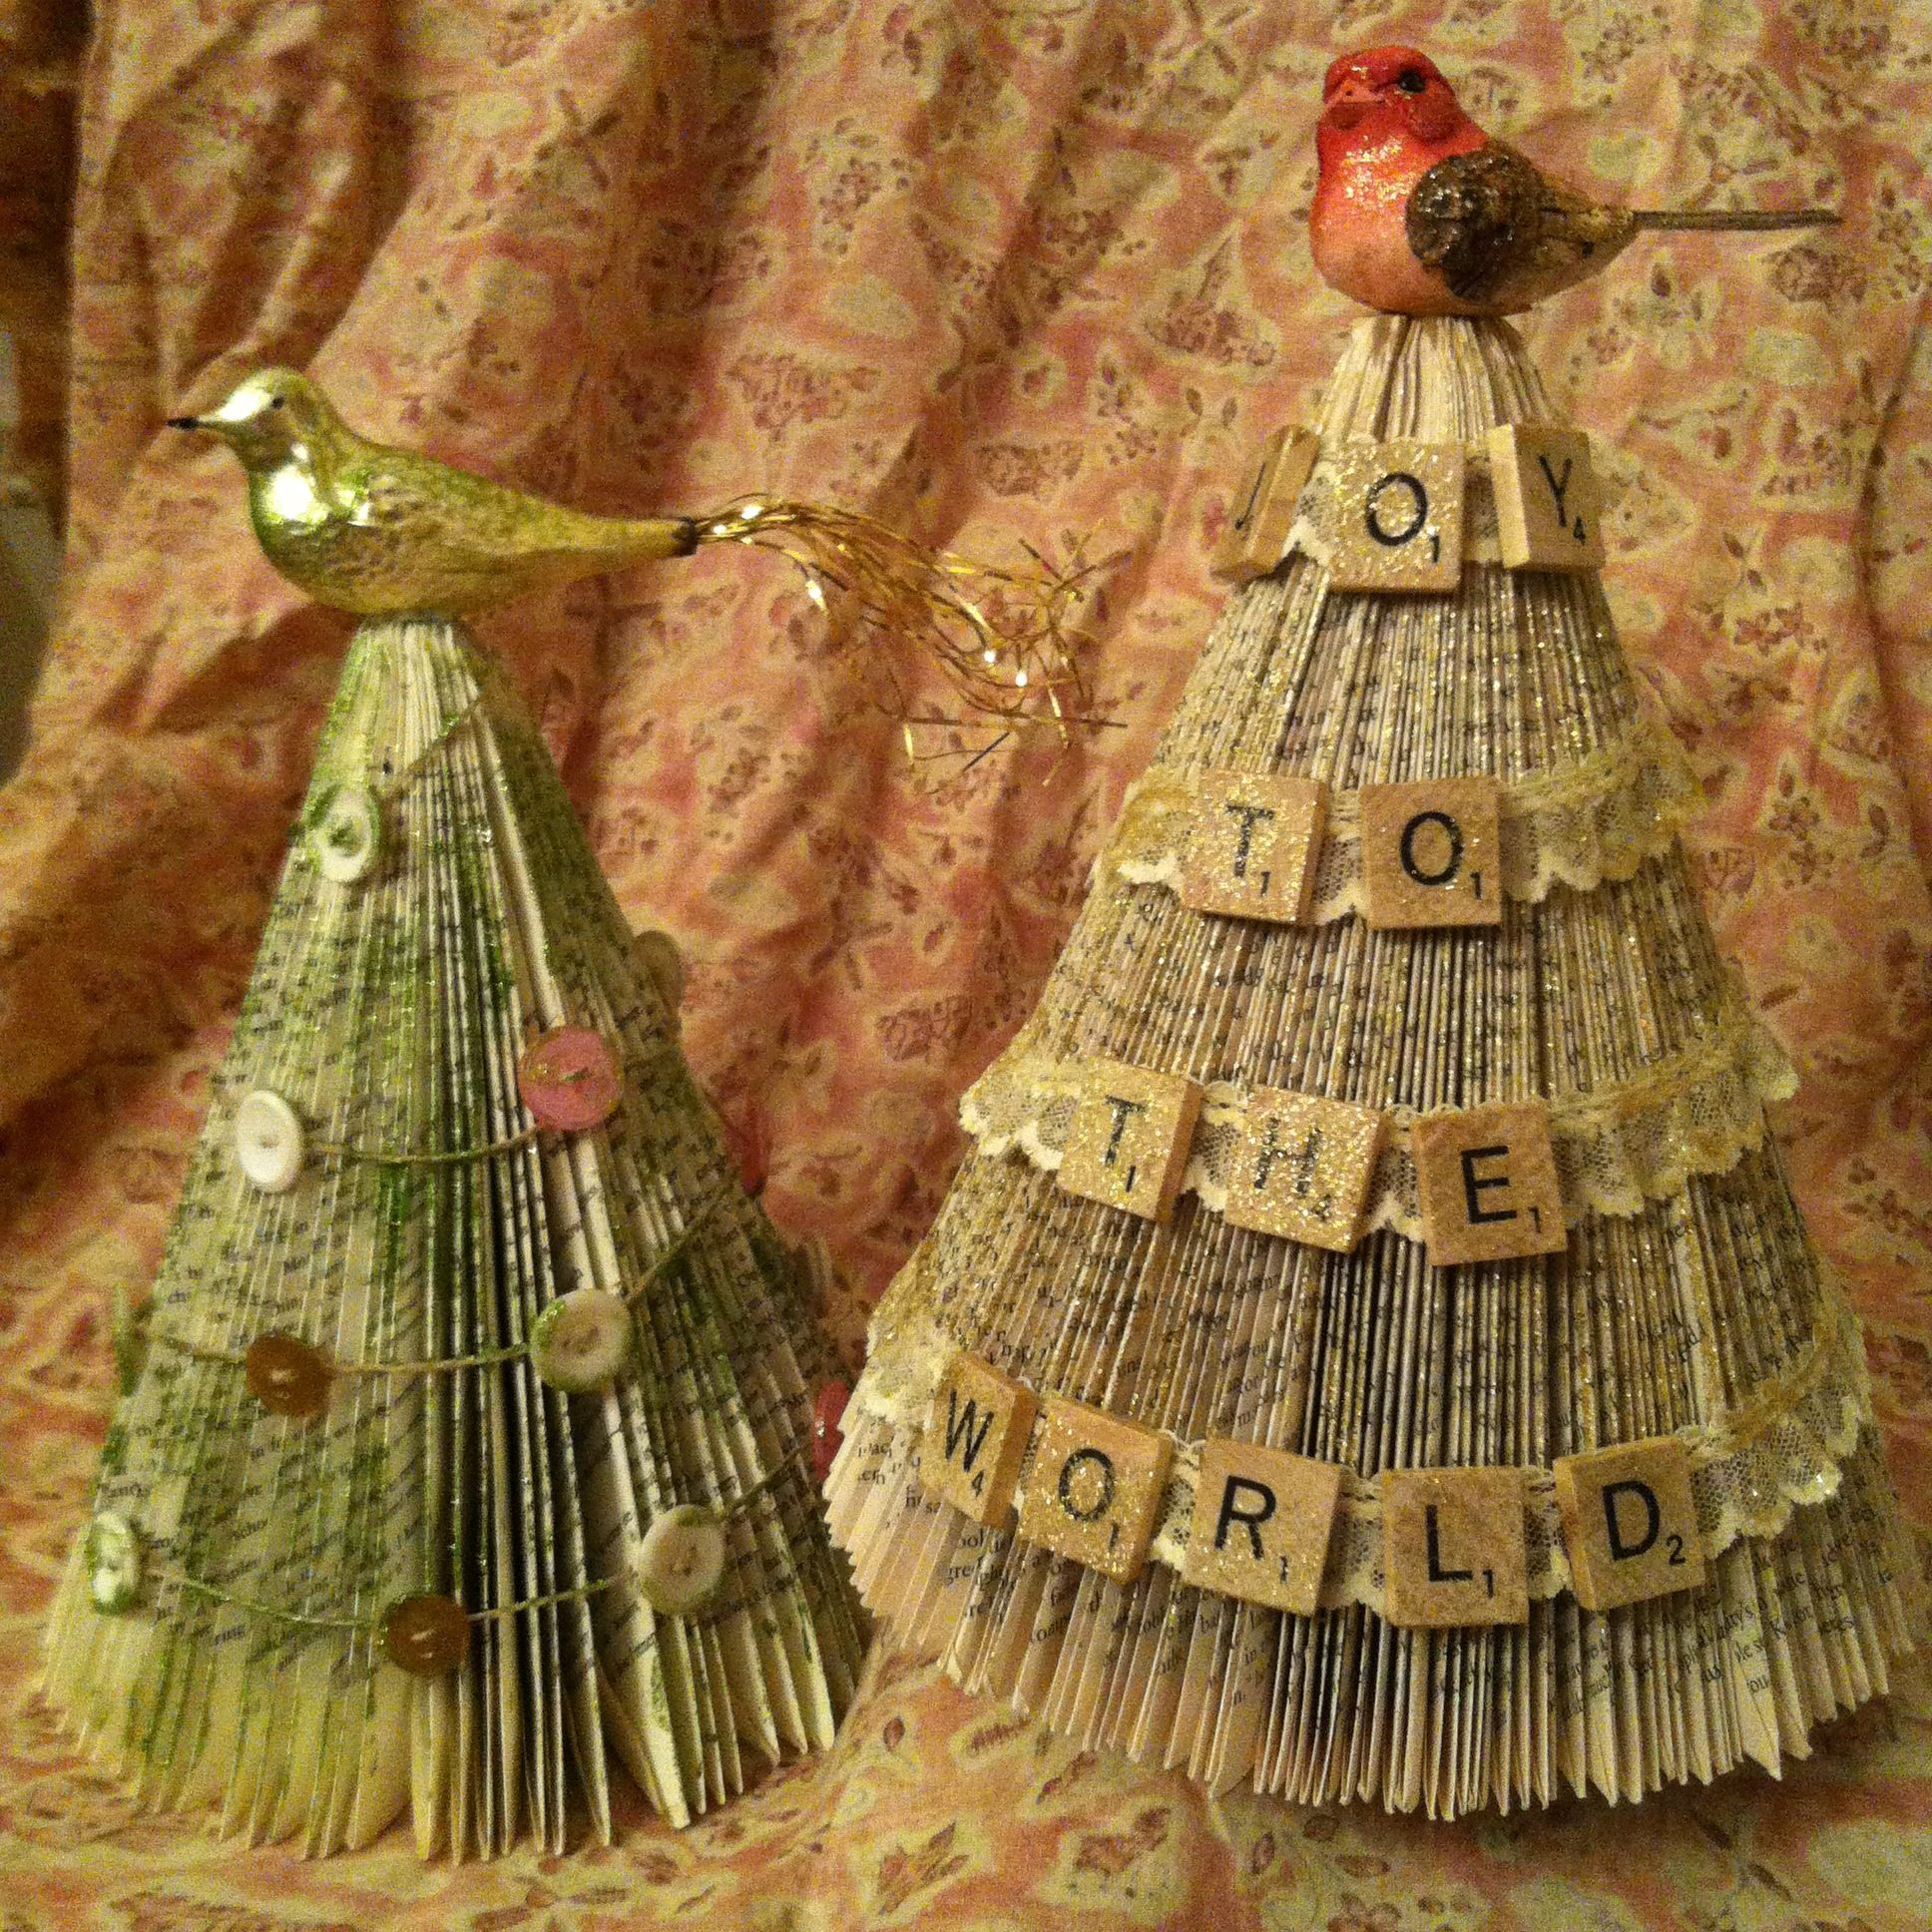 Thrifted Paperback Books Made Into Christmas Trees Loaded With Vintage Embellishments And Glitter By Ecl Christmas Projects Diy Christmas Crafts Christmas Diy